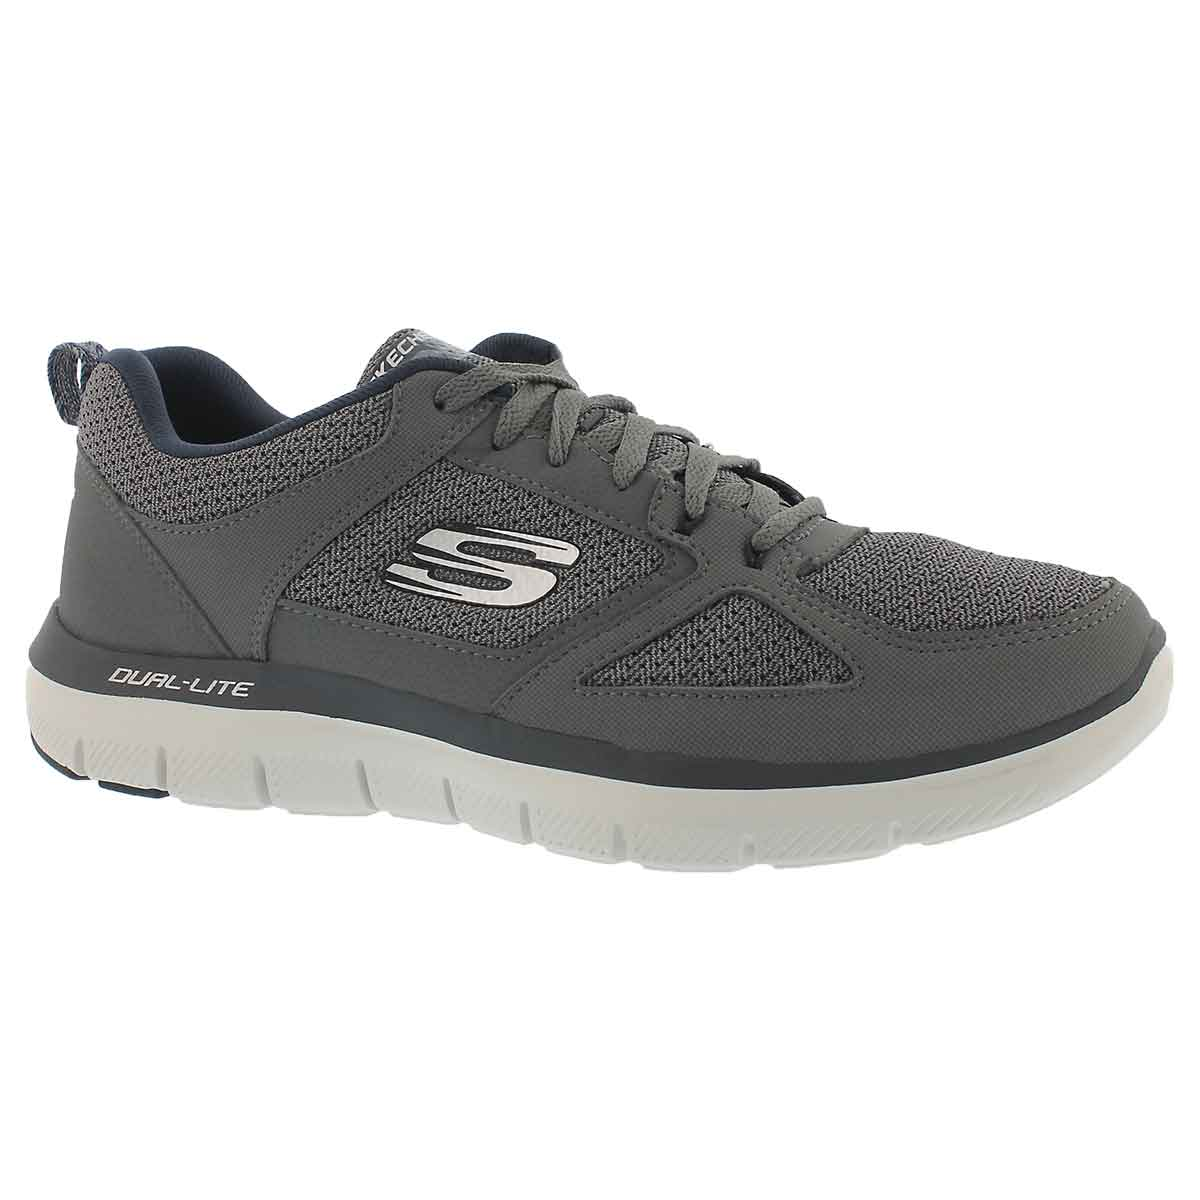 Men's FLEX ADVANTAGE 2.0 charcoal runners